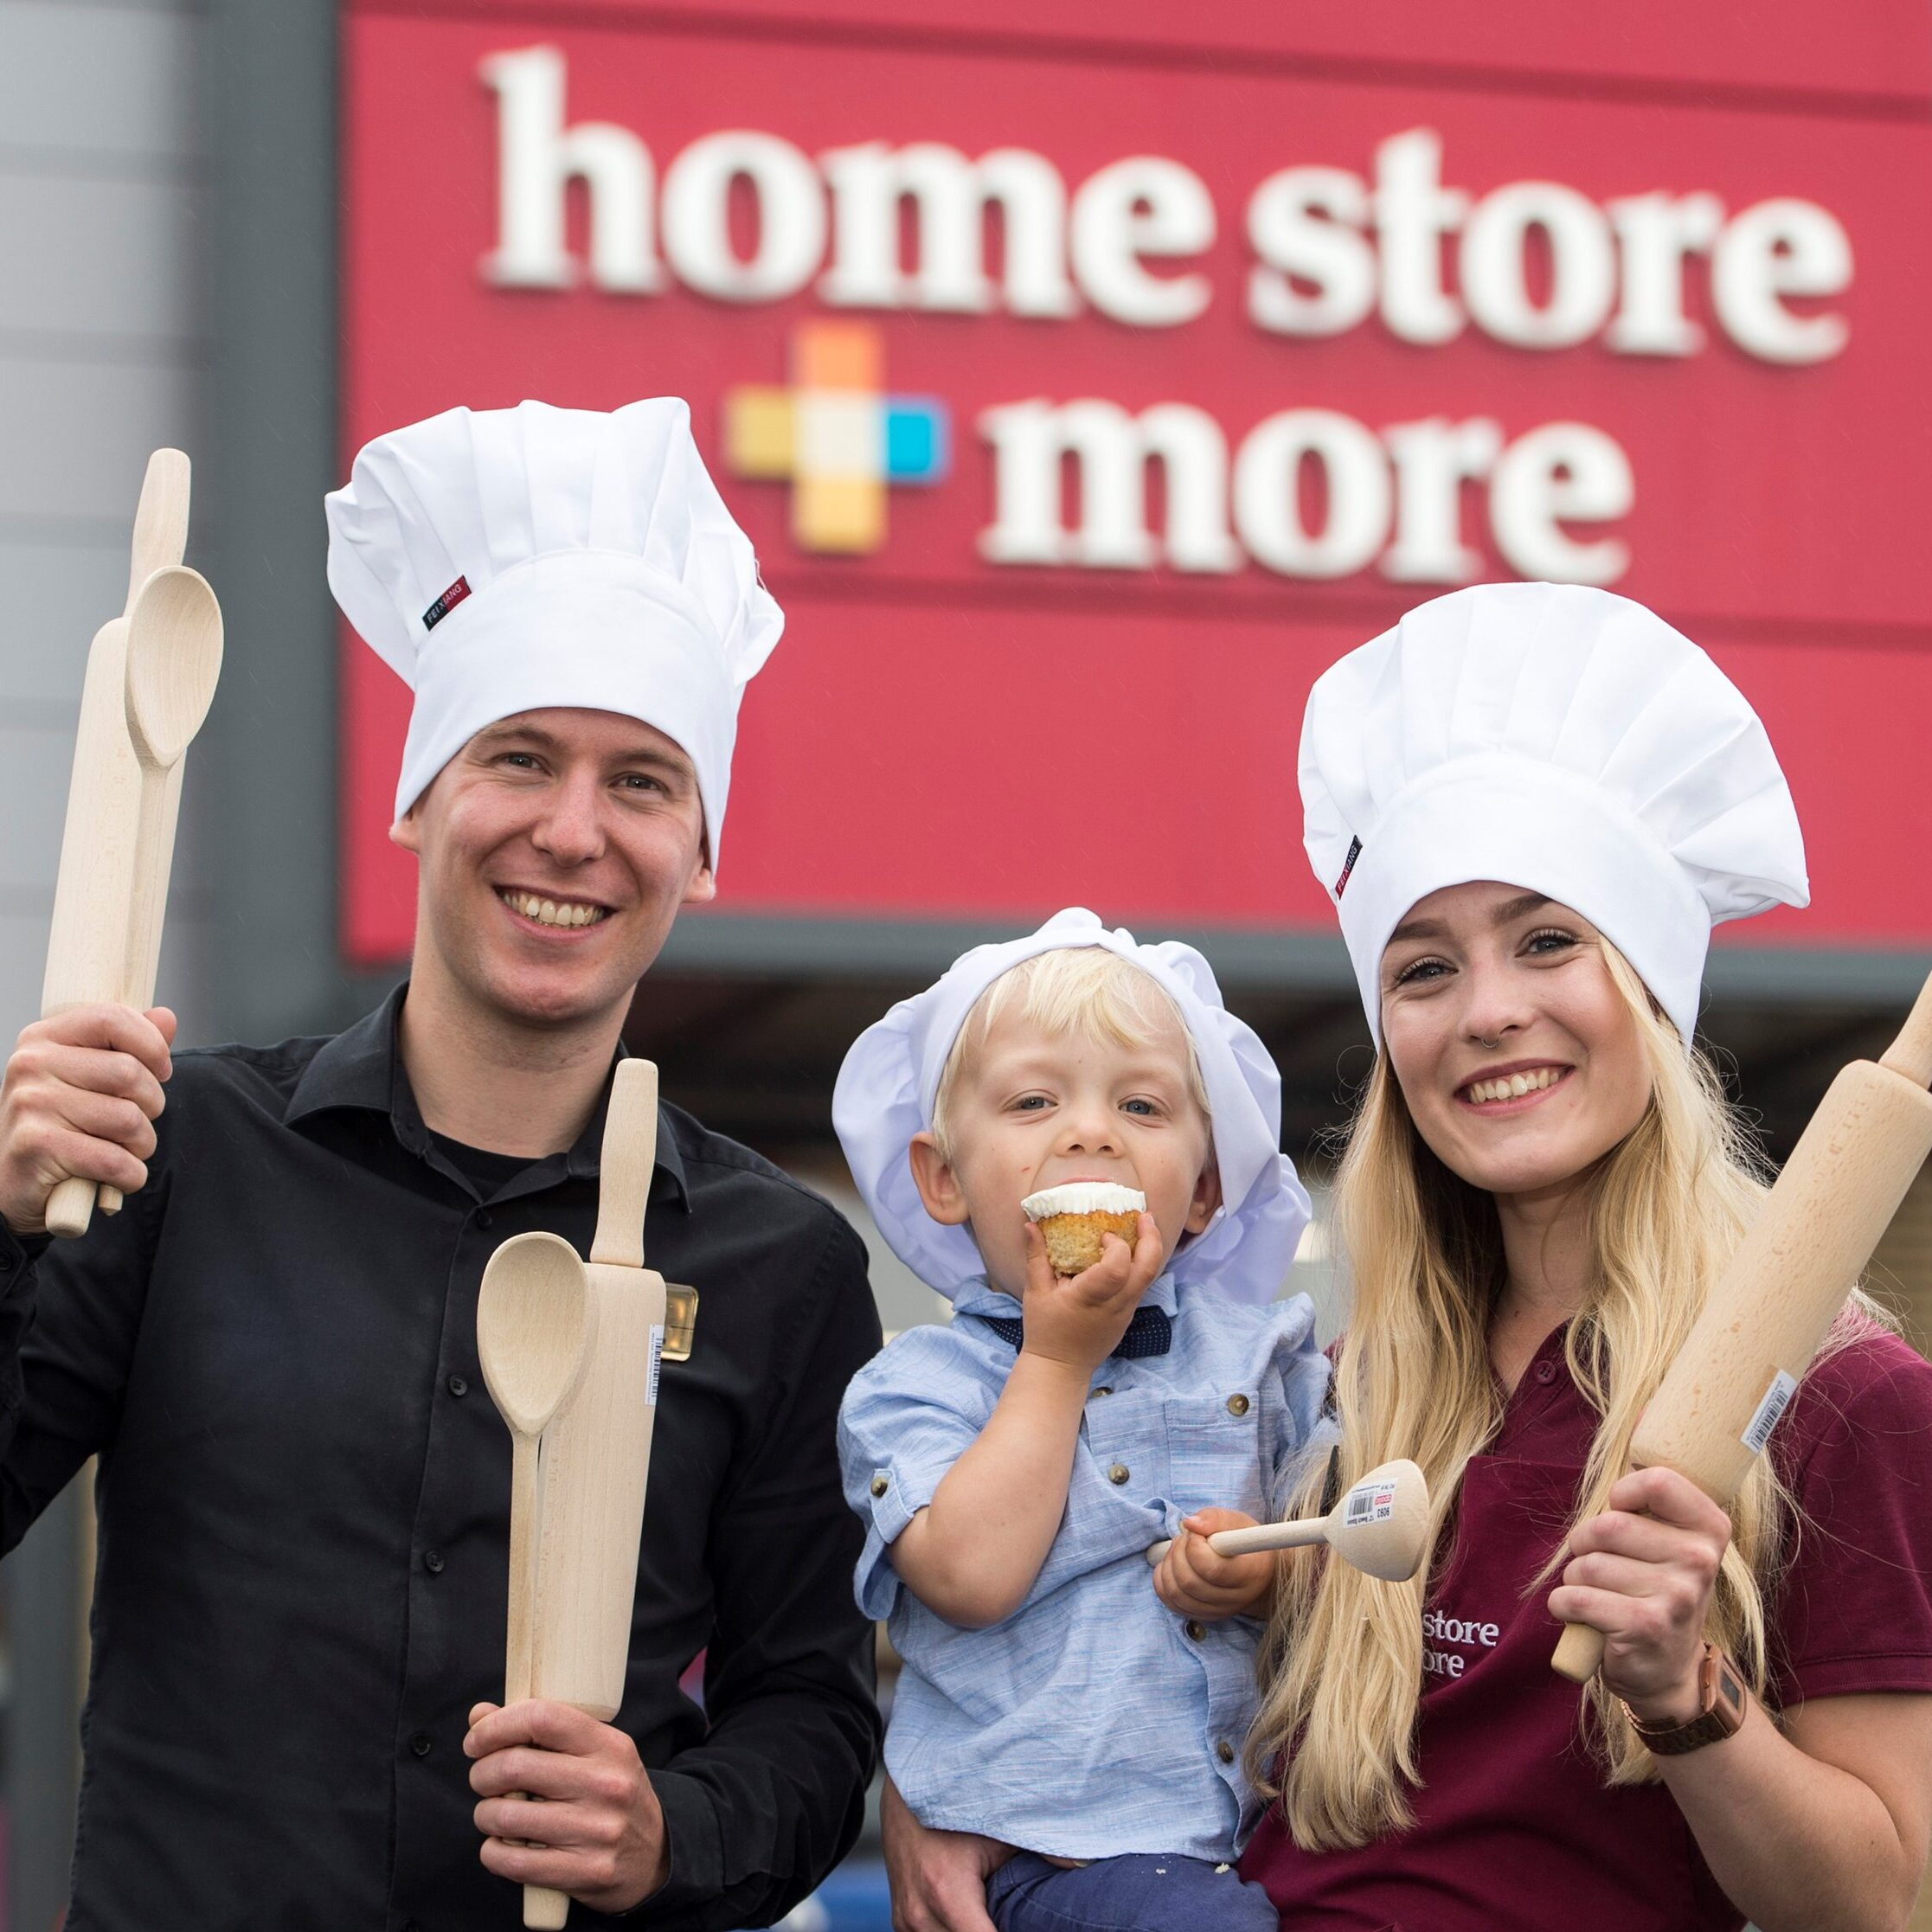 HOME STORE & MORE